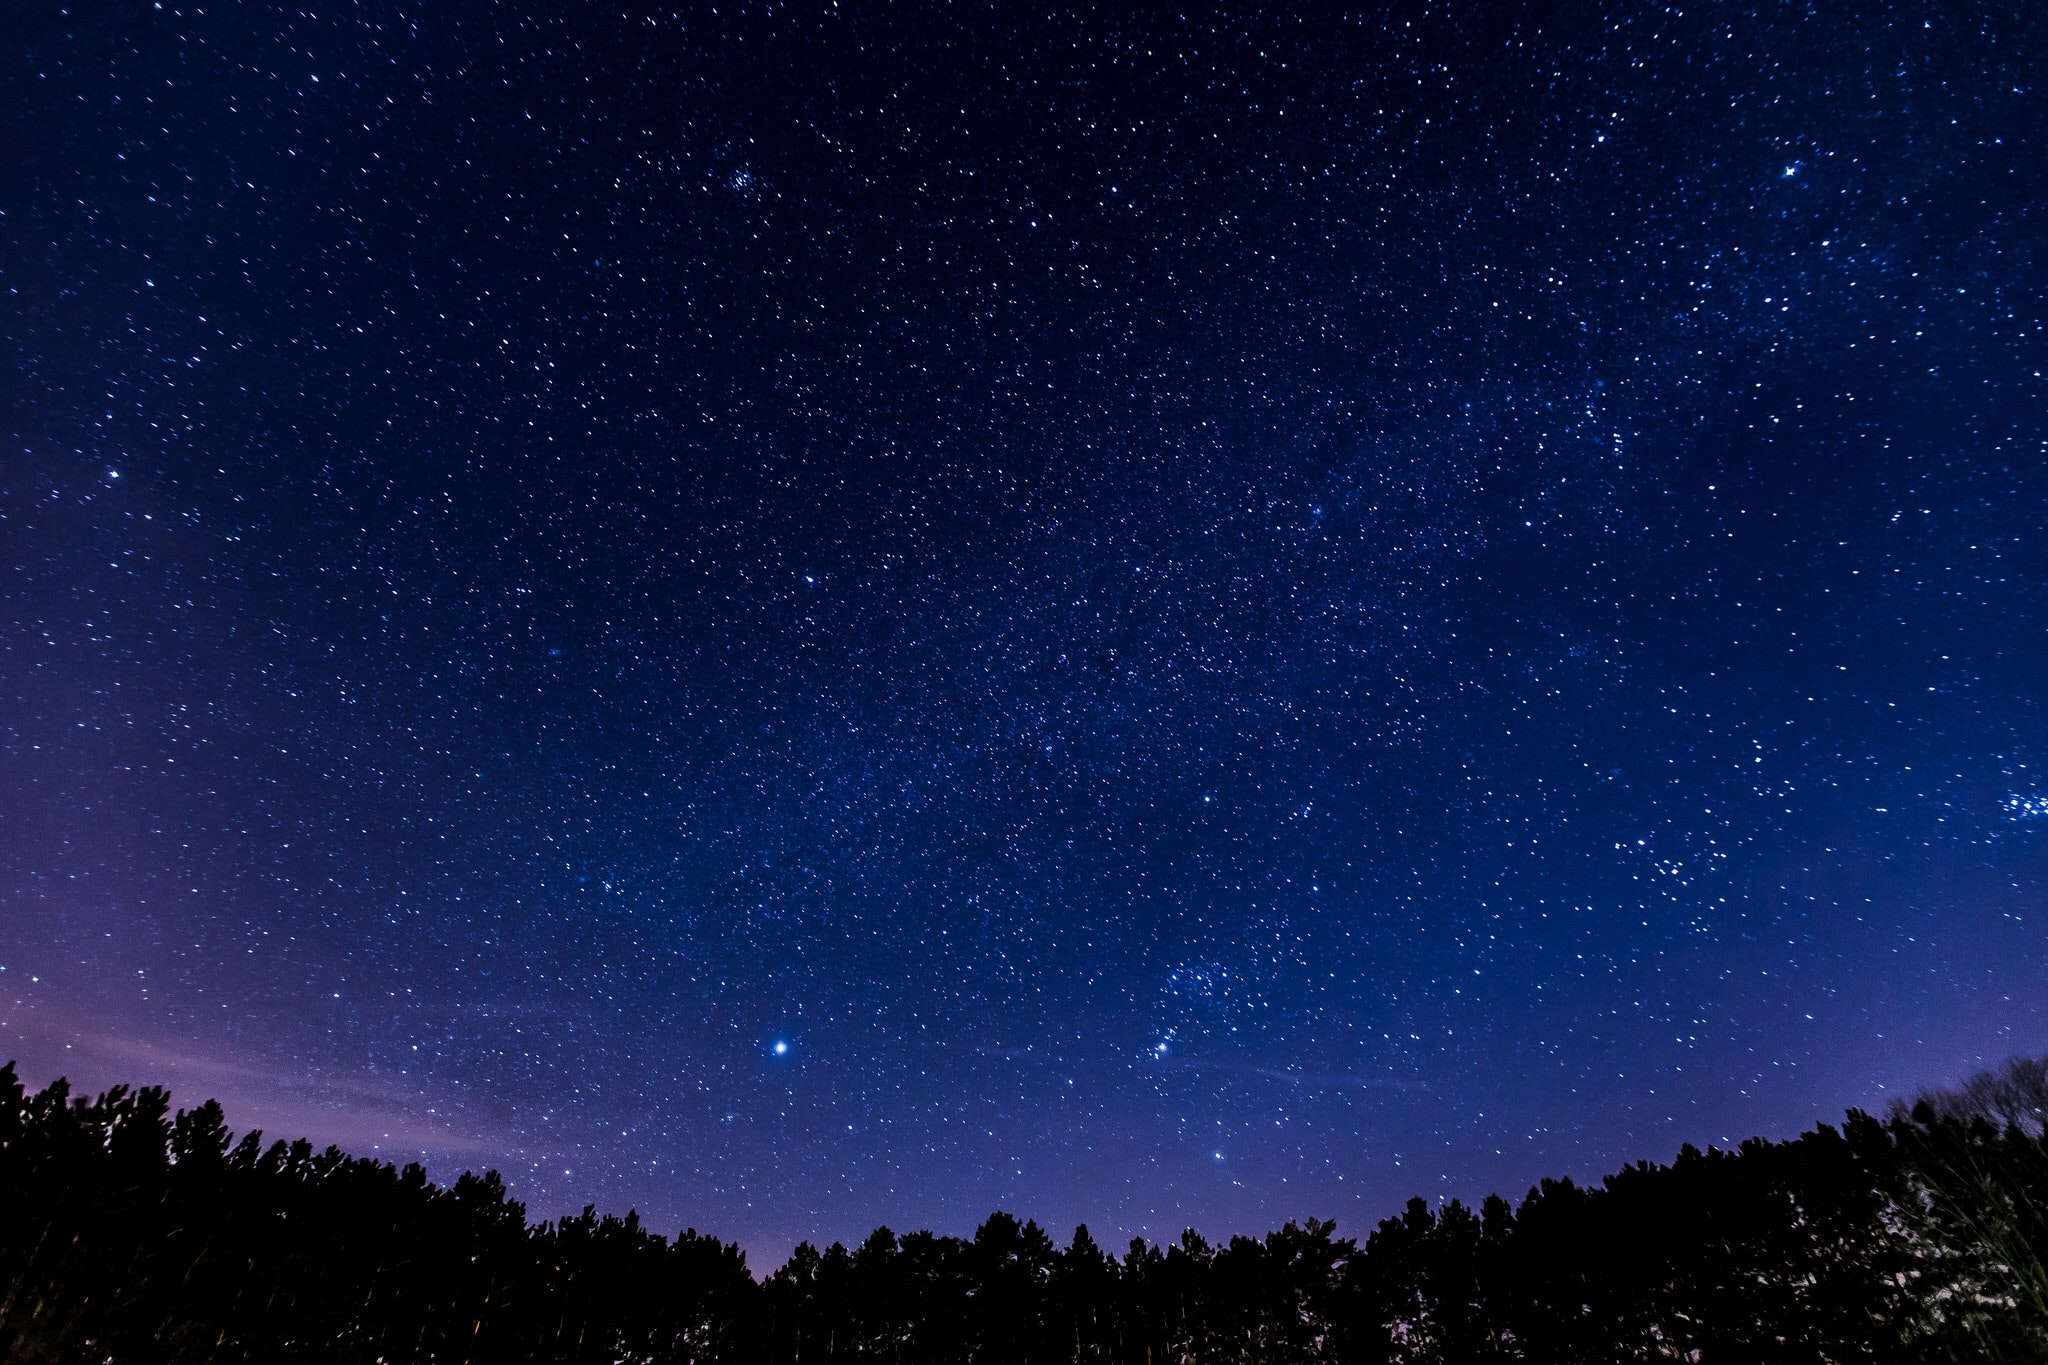 Panoramic view of the night sky full of stars above the silhouette of the forest.